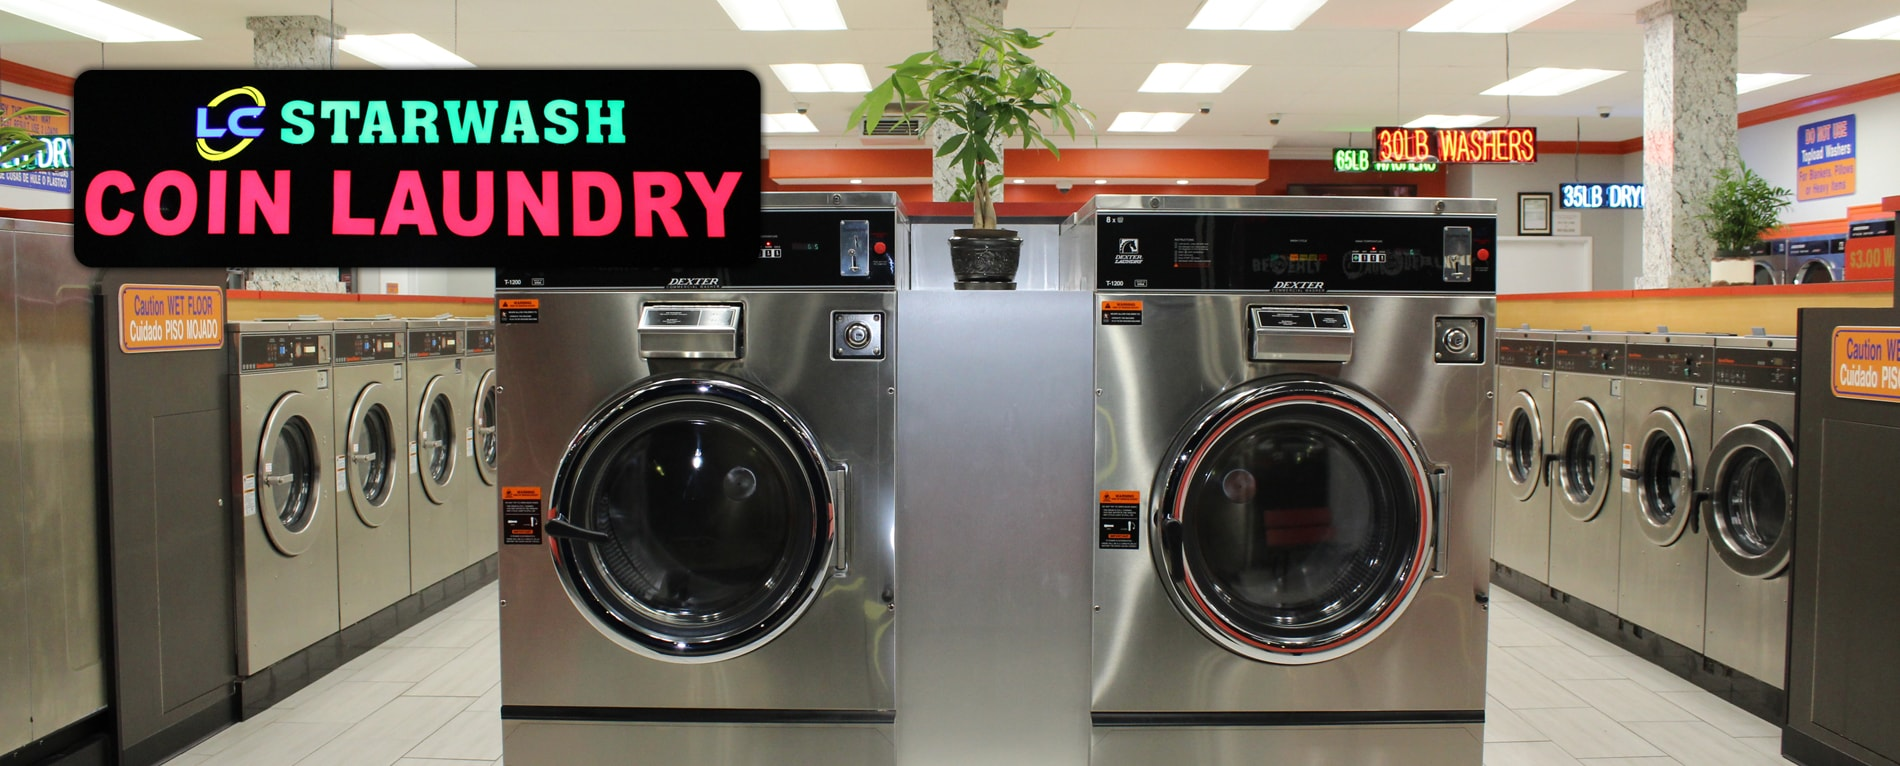 LC Starwash Coin Laundry: 10722 Beverly Blvd, Suite #R,S,T, Whittier, CA 90601